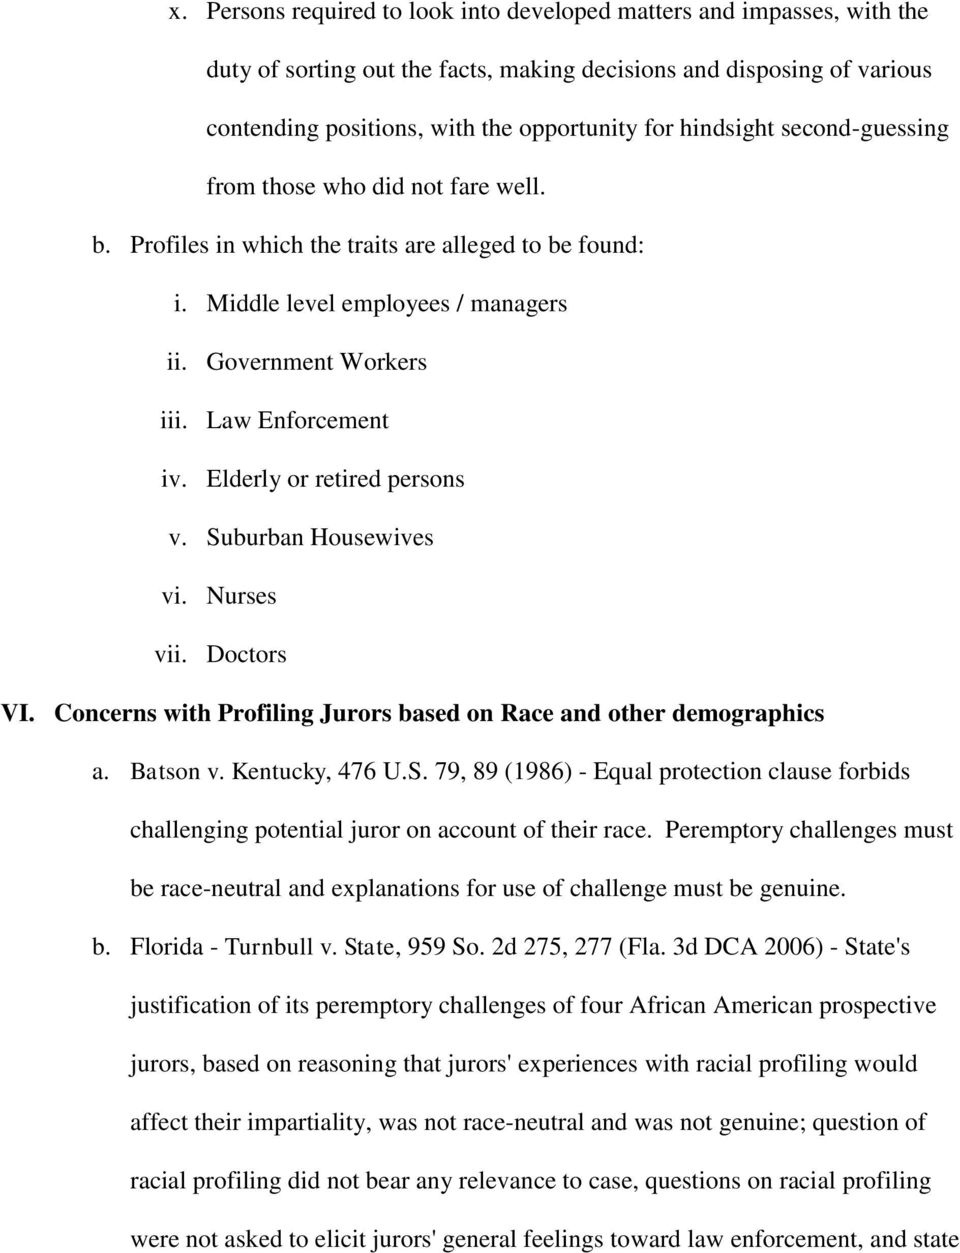 Law Enforcement iv. Elderly or retired persons v. Suburban Housewives vi. Nurses vii. Doctors VI. Concerns with Profiling Jurors based on Race and other demographics a. Batson v. Kentucky, 476 U.S. 79, 89 (1986) - Equal protection clause forbids challenging potential juror on account of their race.